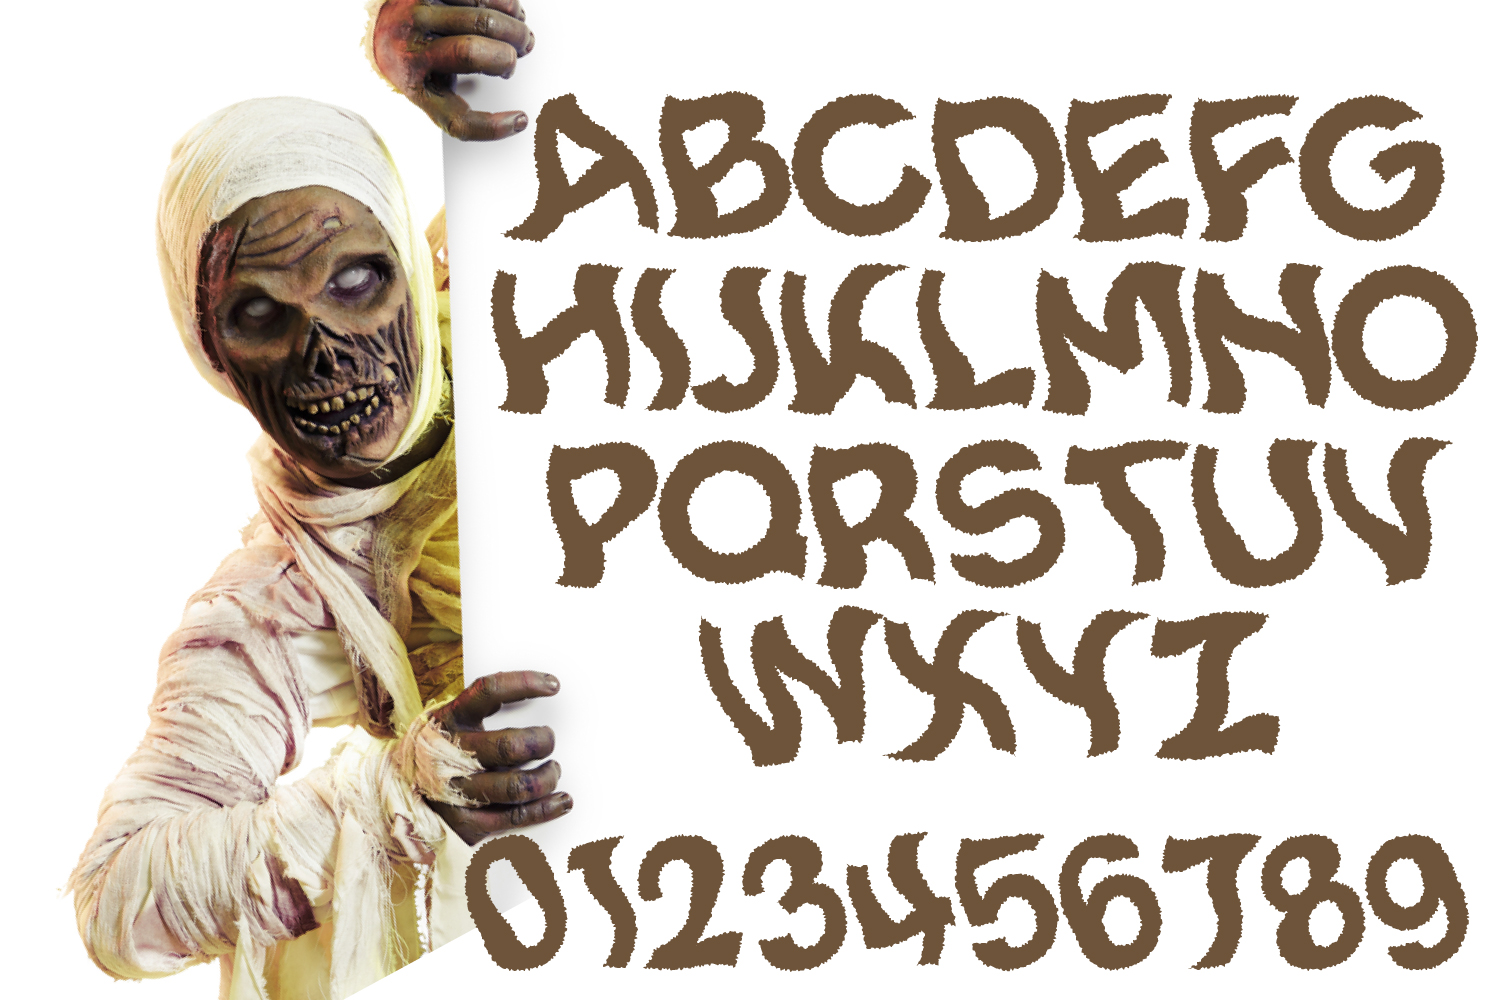 Spooky Smoke - Halloween & Twisted Font example image 4